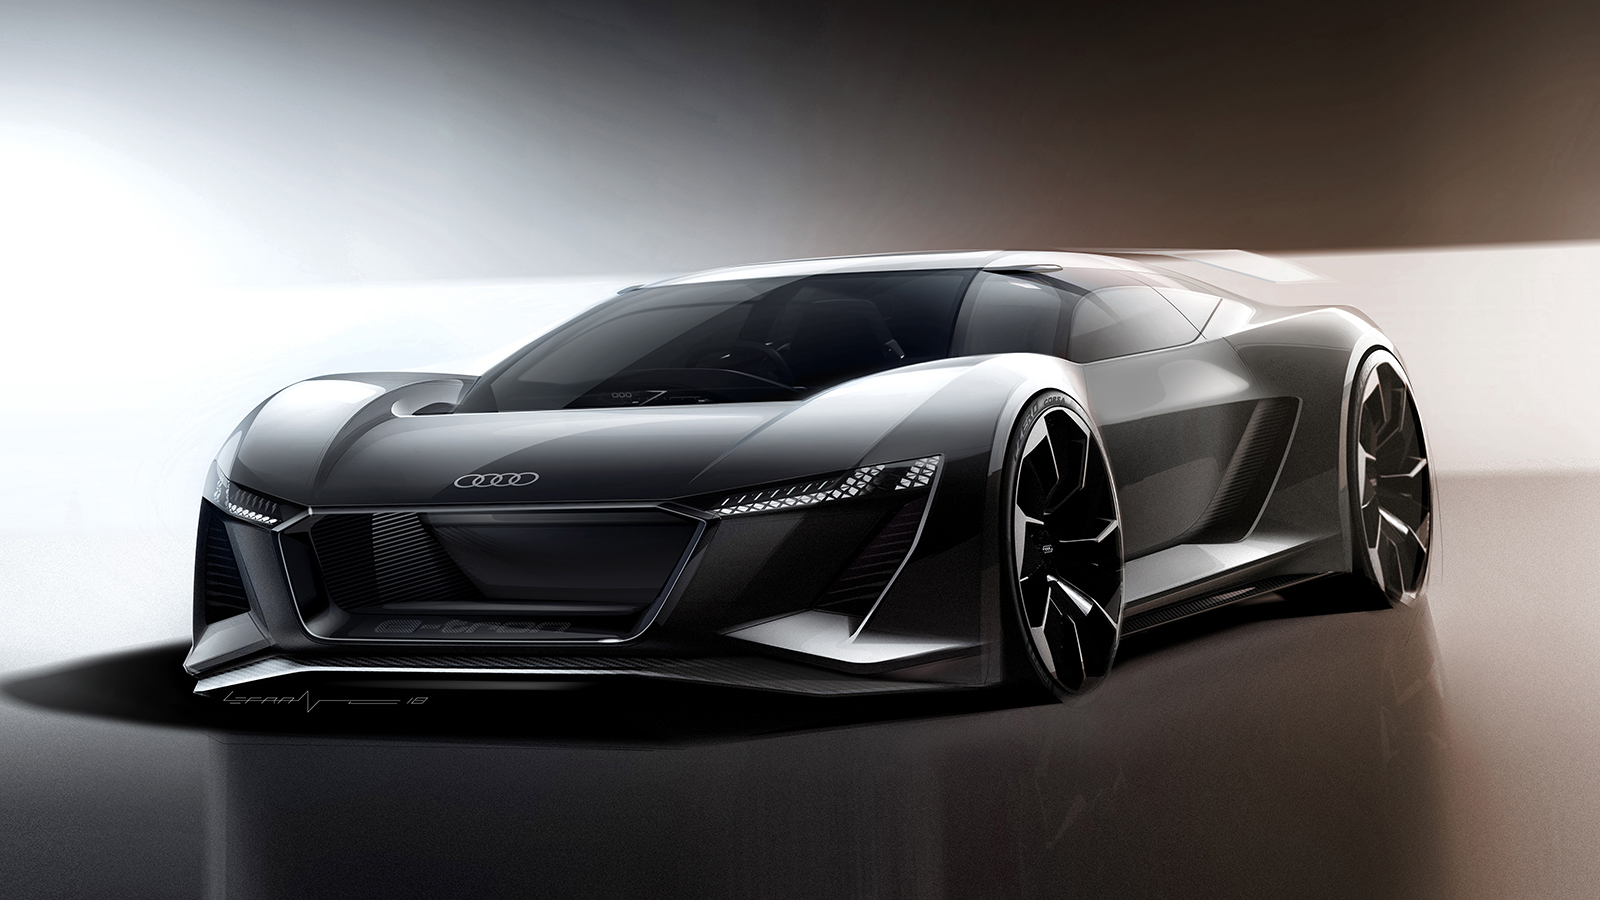 audi pb 18 e tron concept car 4527 e tron connect. Black Bedroom Furniture Sets. Home Design Ideas